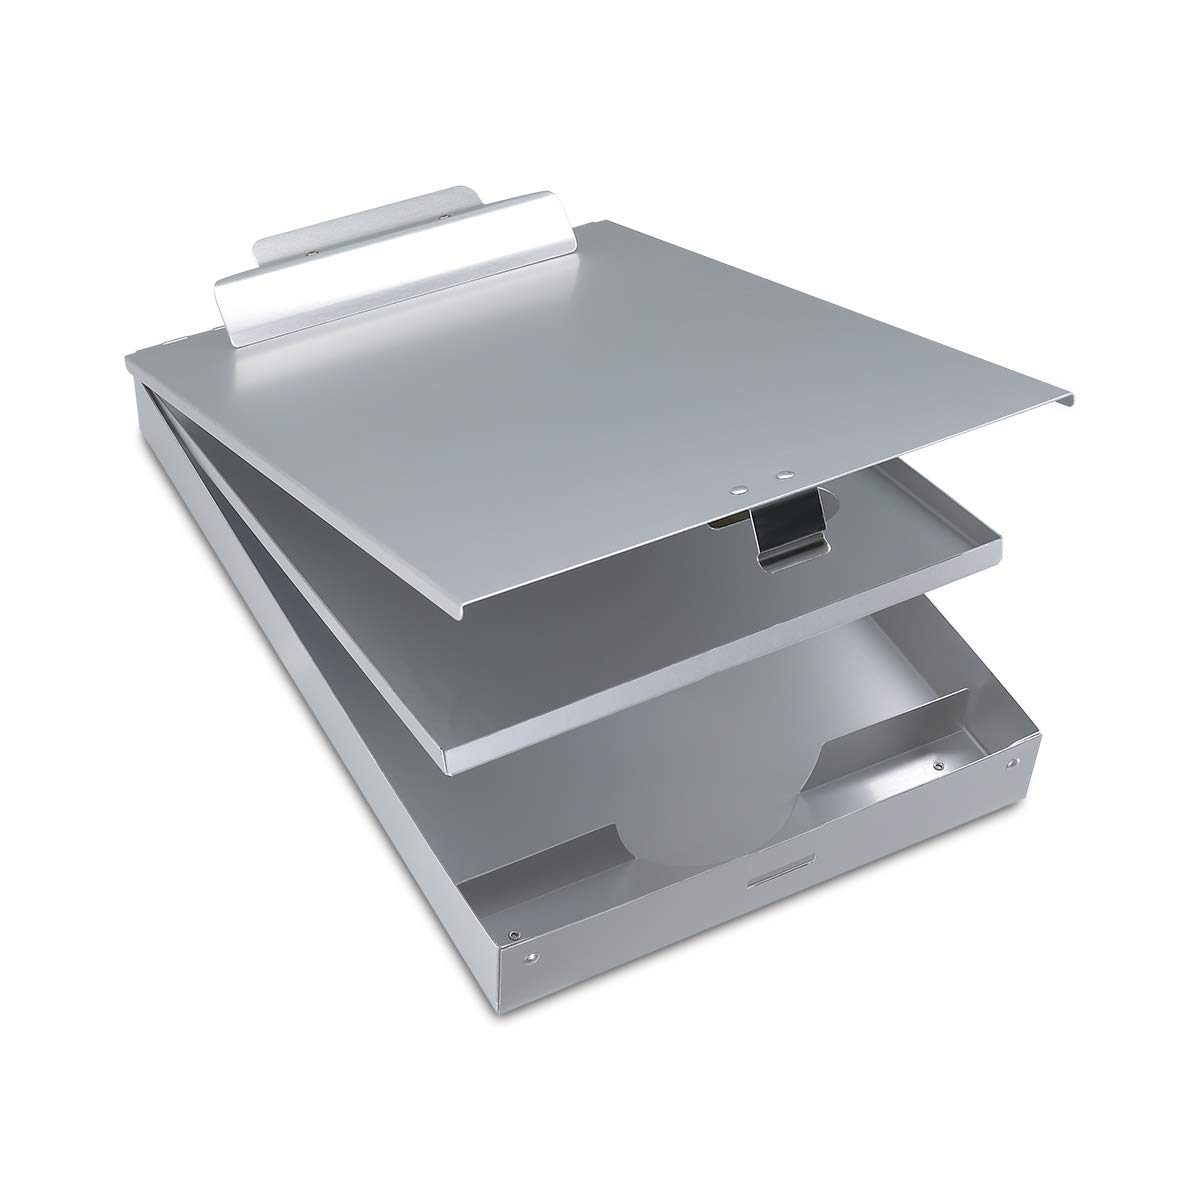 Metal ClipboardwithStorage Box, Aluminum Clipboards with Metal Binder SnapakFormholder with Self-Locking Latch and Top Hinged Opening for Heavy Duty, Nursing, Patrol, Office Business Professionals